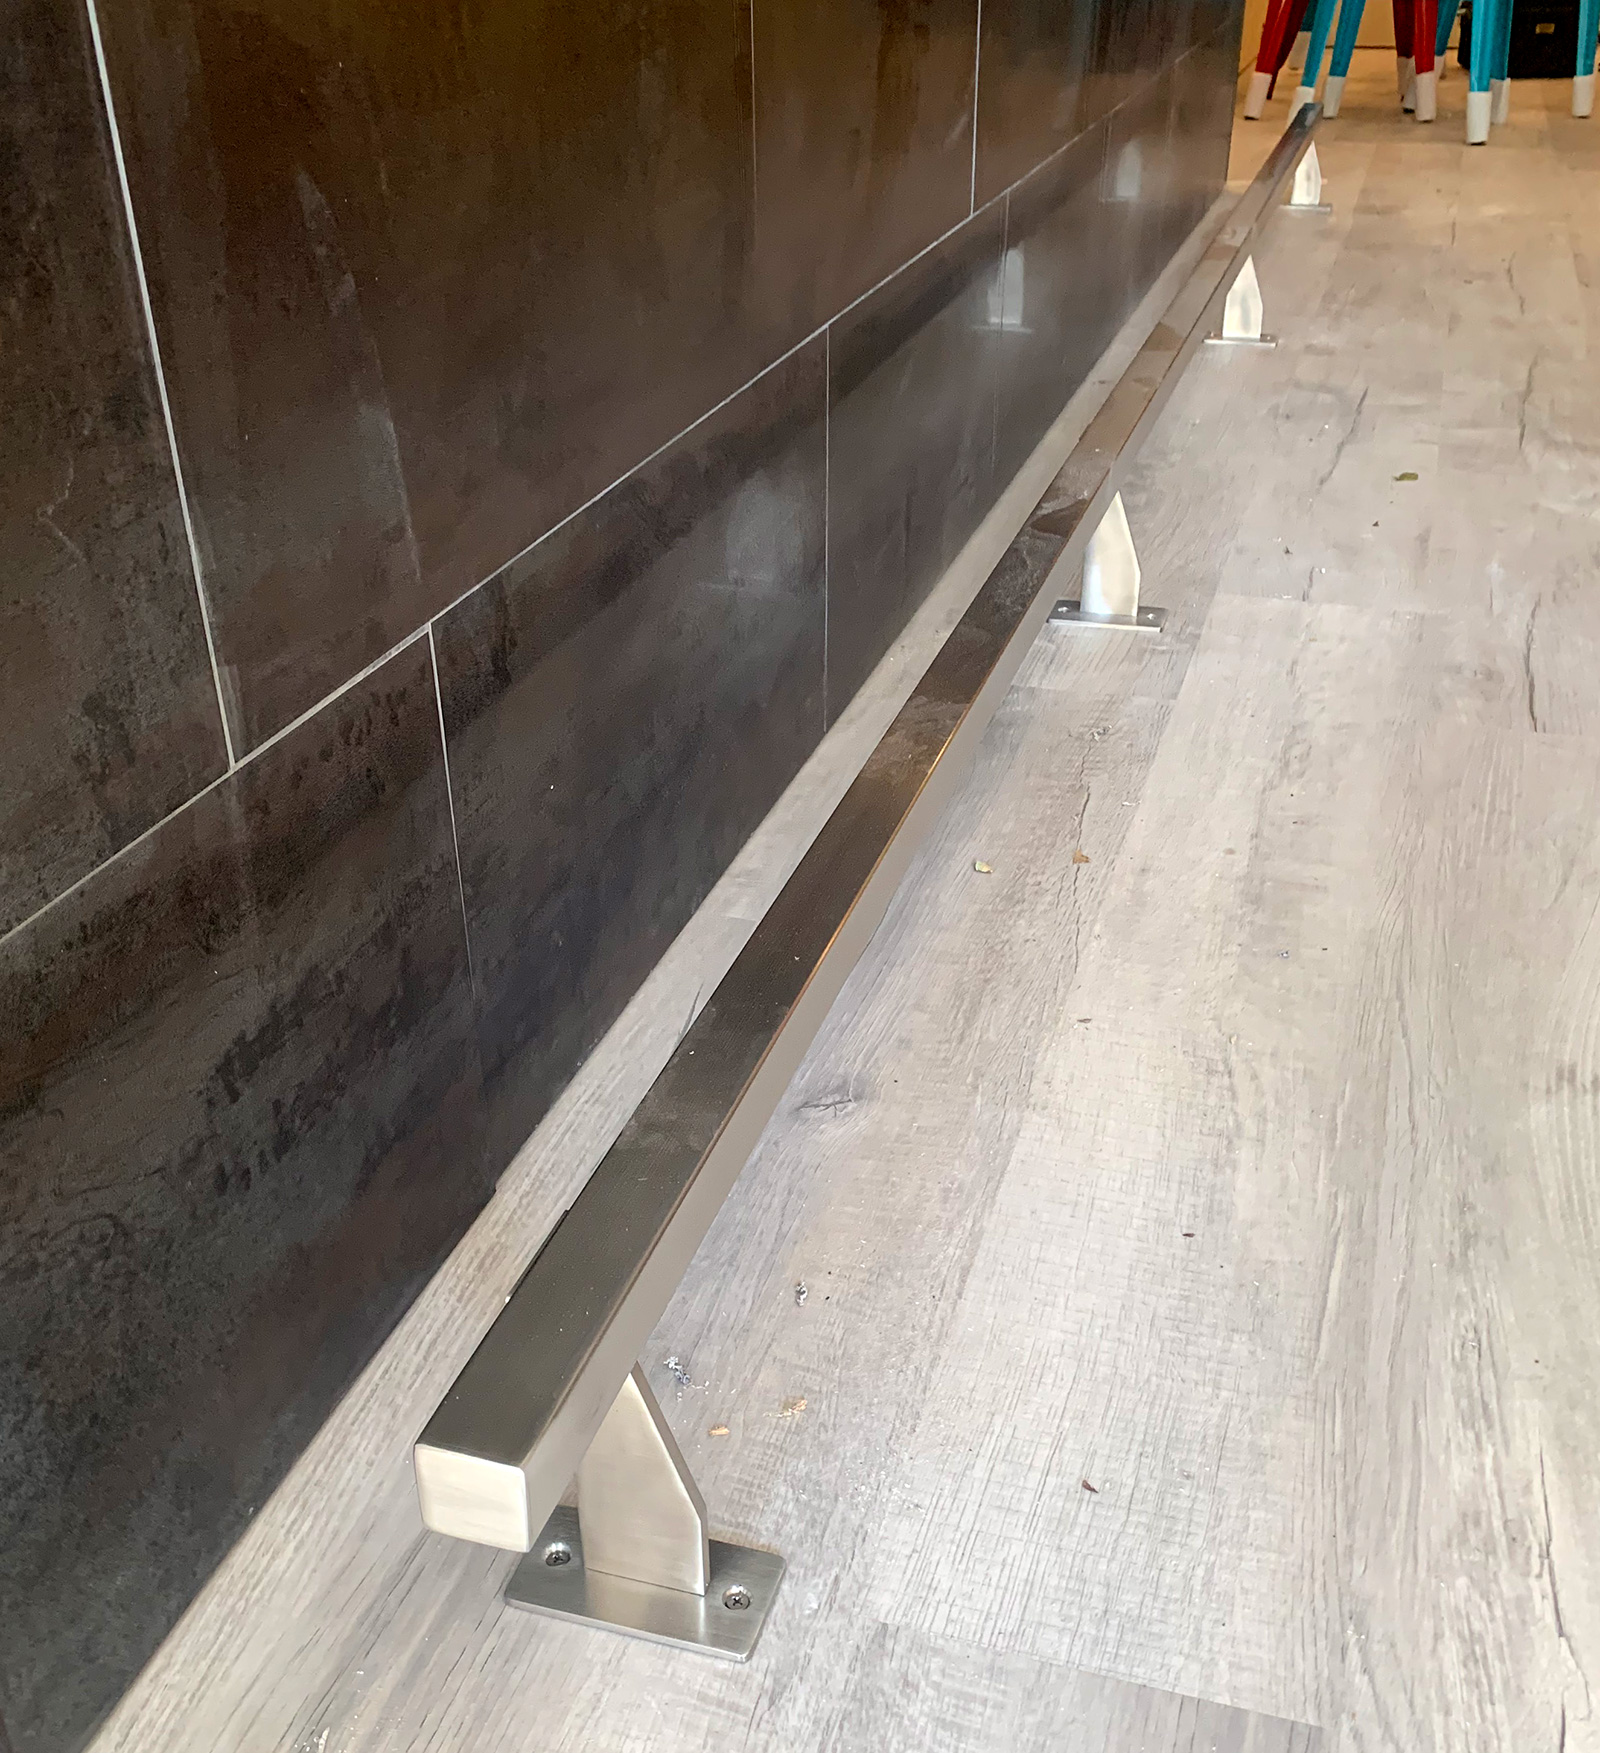 Satin Stainless Steel Foot Rail | Pizzabar 141 - Woodbury, NY